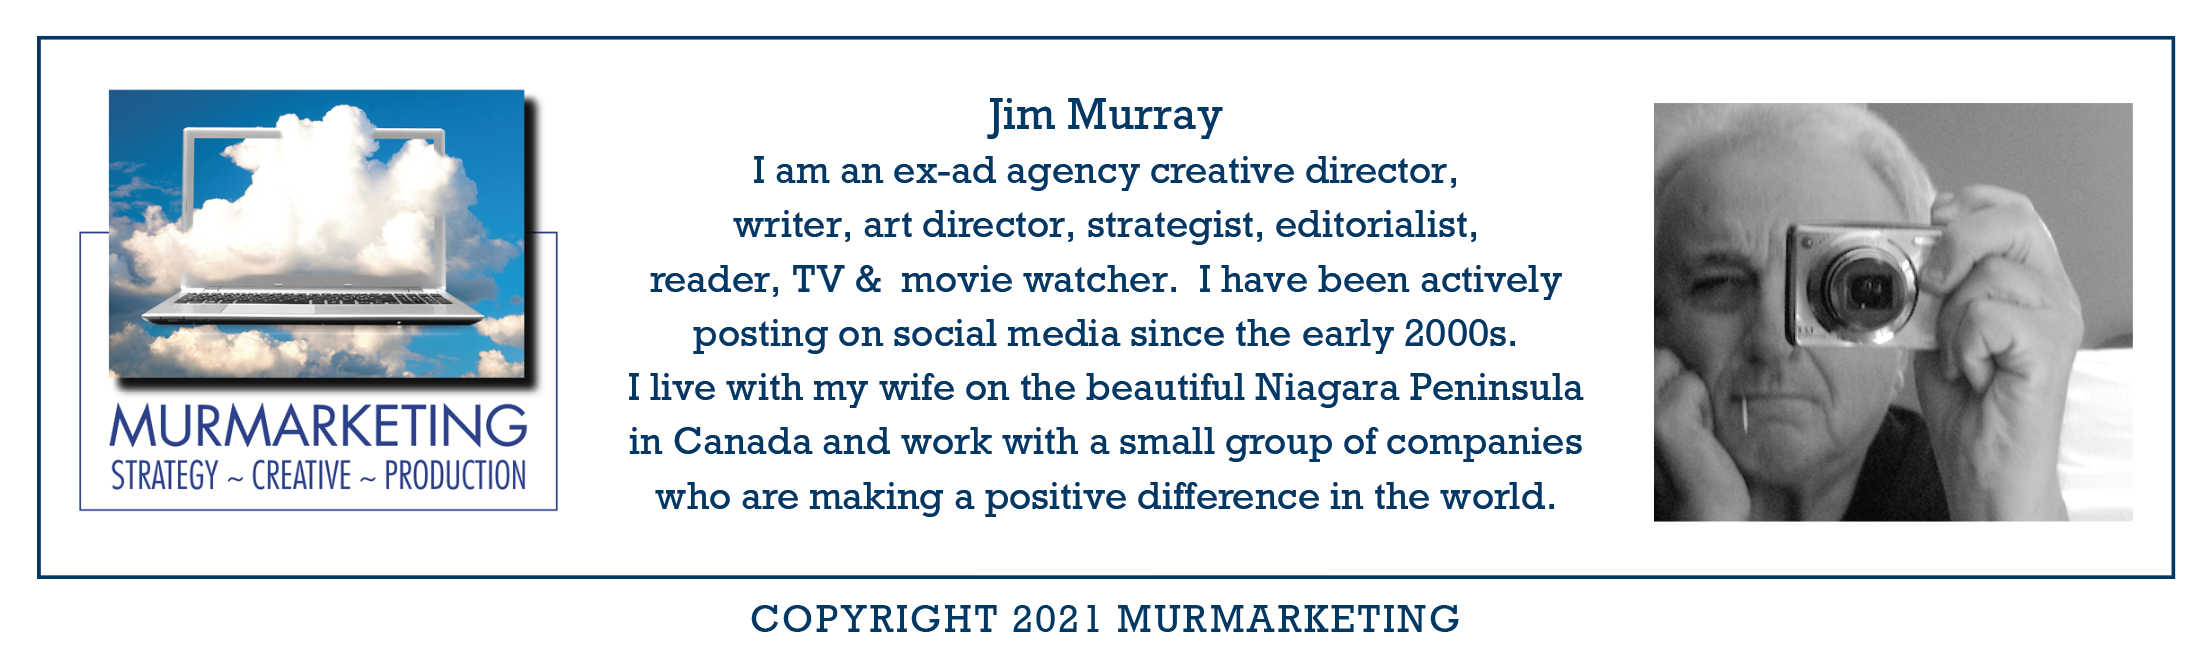 be MURMARKETING STRATEGY ~ CREATIVE ~ PRODUCTION        Jim Murray I am an ex-ad agency creative director, writer, art director, strategist, editorialist, reader, TV & movie watcher. I have been actively posting on social media since the early 2000s.  I live with my wife on the beautiful Niagara Peninsula in Canada and work with a small group of companies  who are making a positive difference in the world.     COPYRIGHT 2021 MURMARKETING